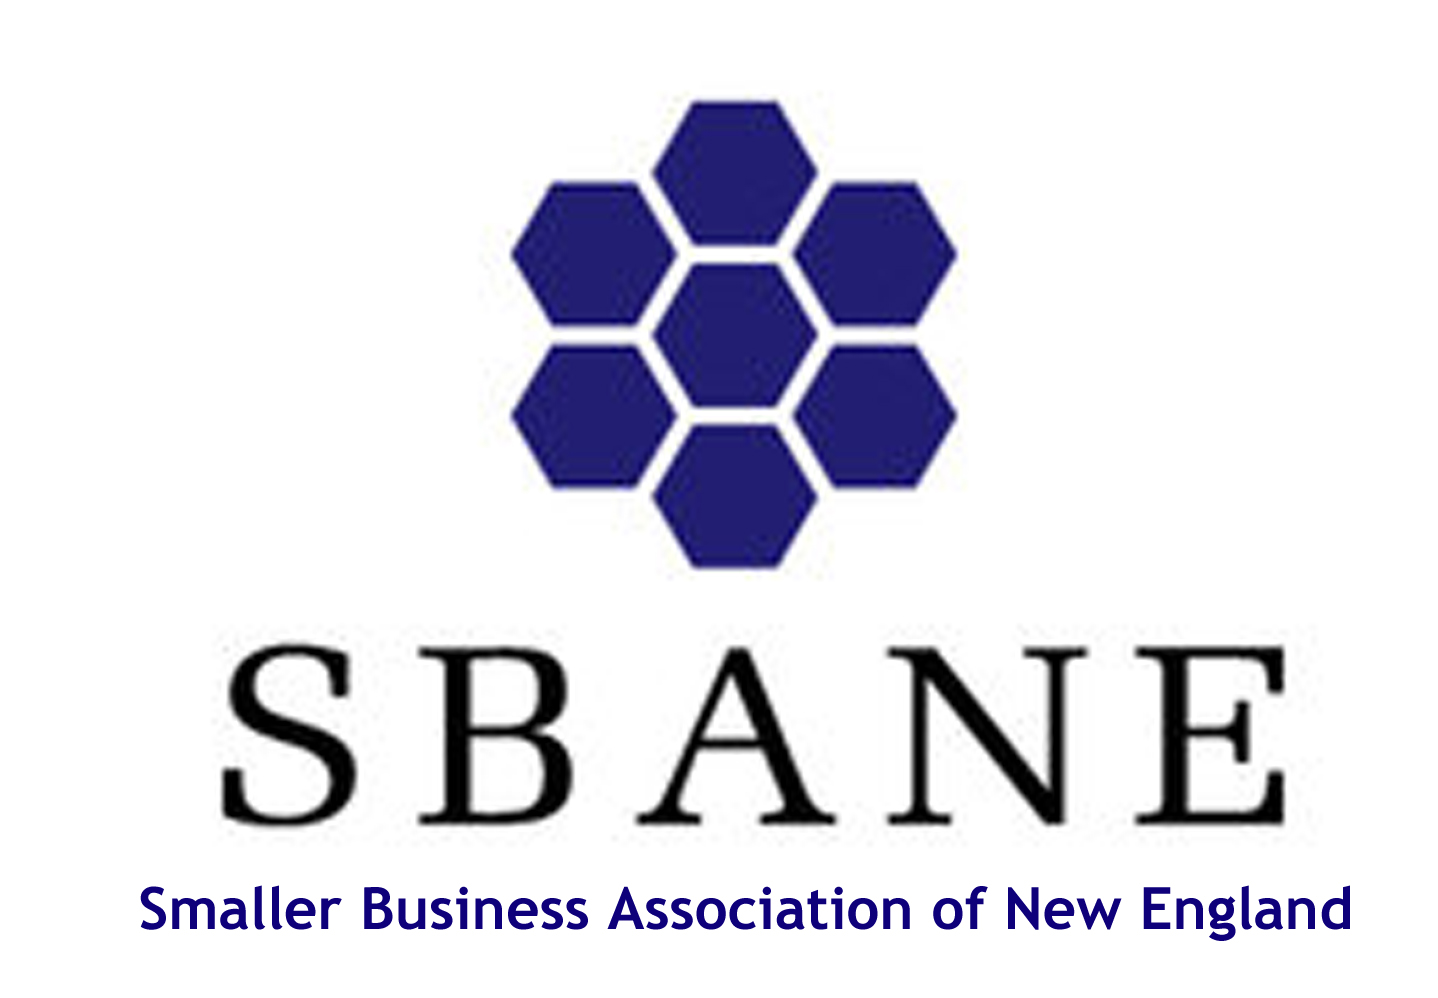 CAI Managed IT Joins the Smaller Business Association of New England (SBANE)